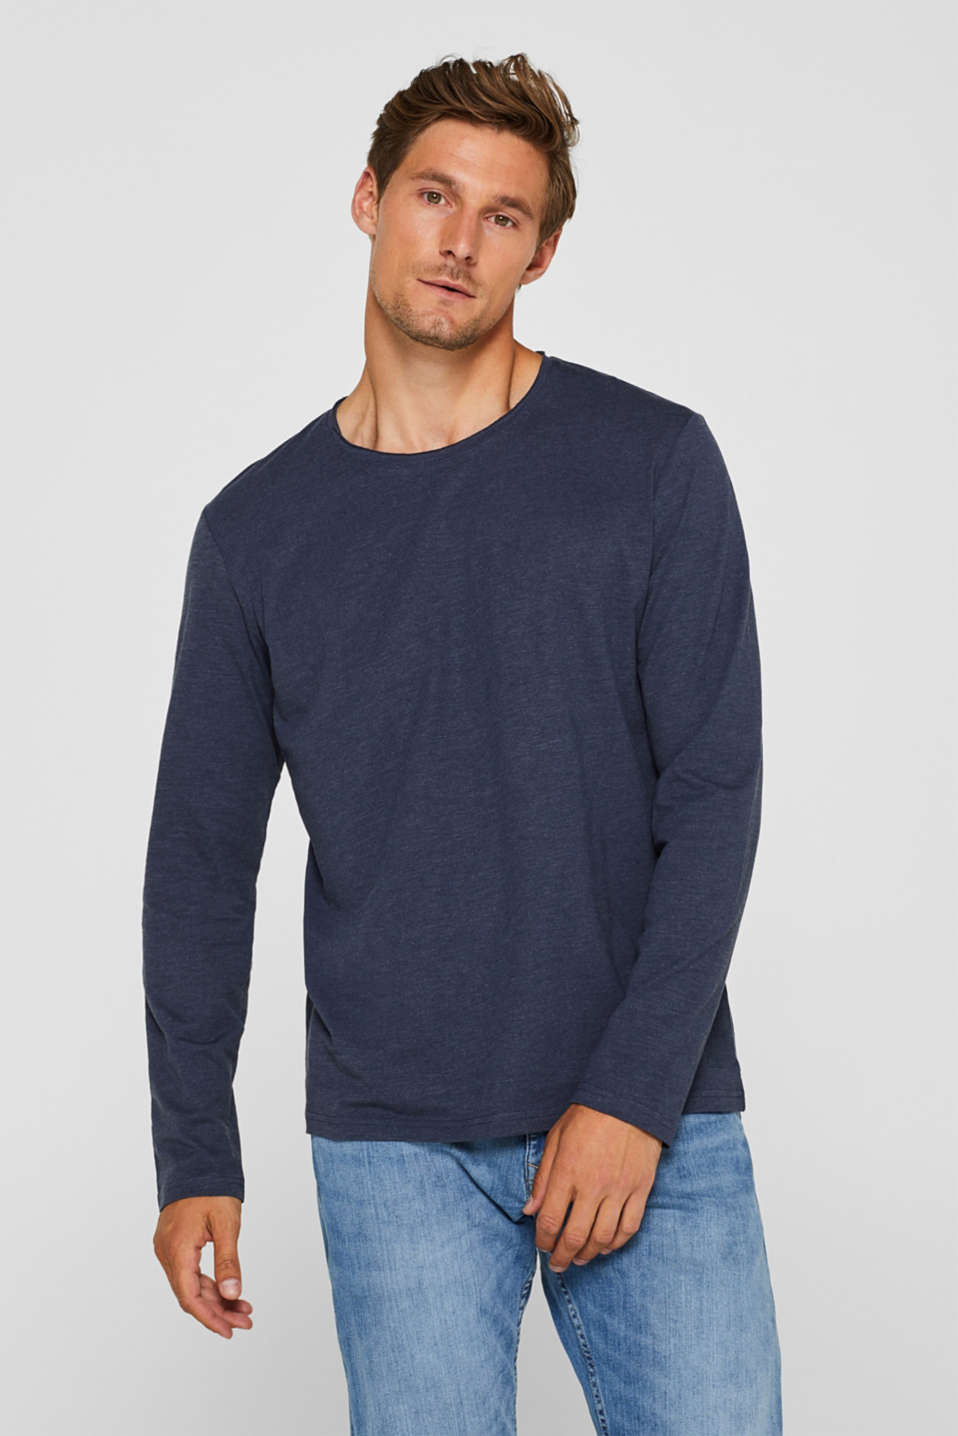 Long sleeve jersey top in blended cotton, NAVY, detail image number 0